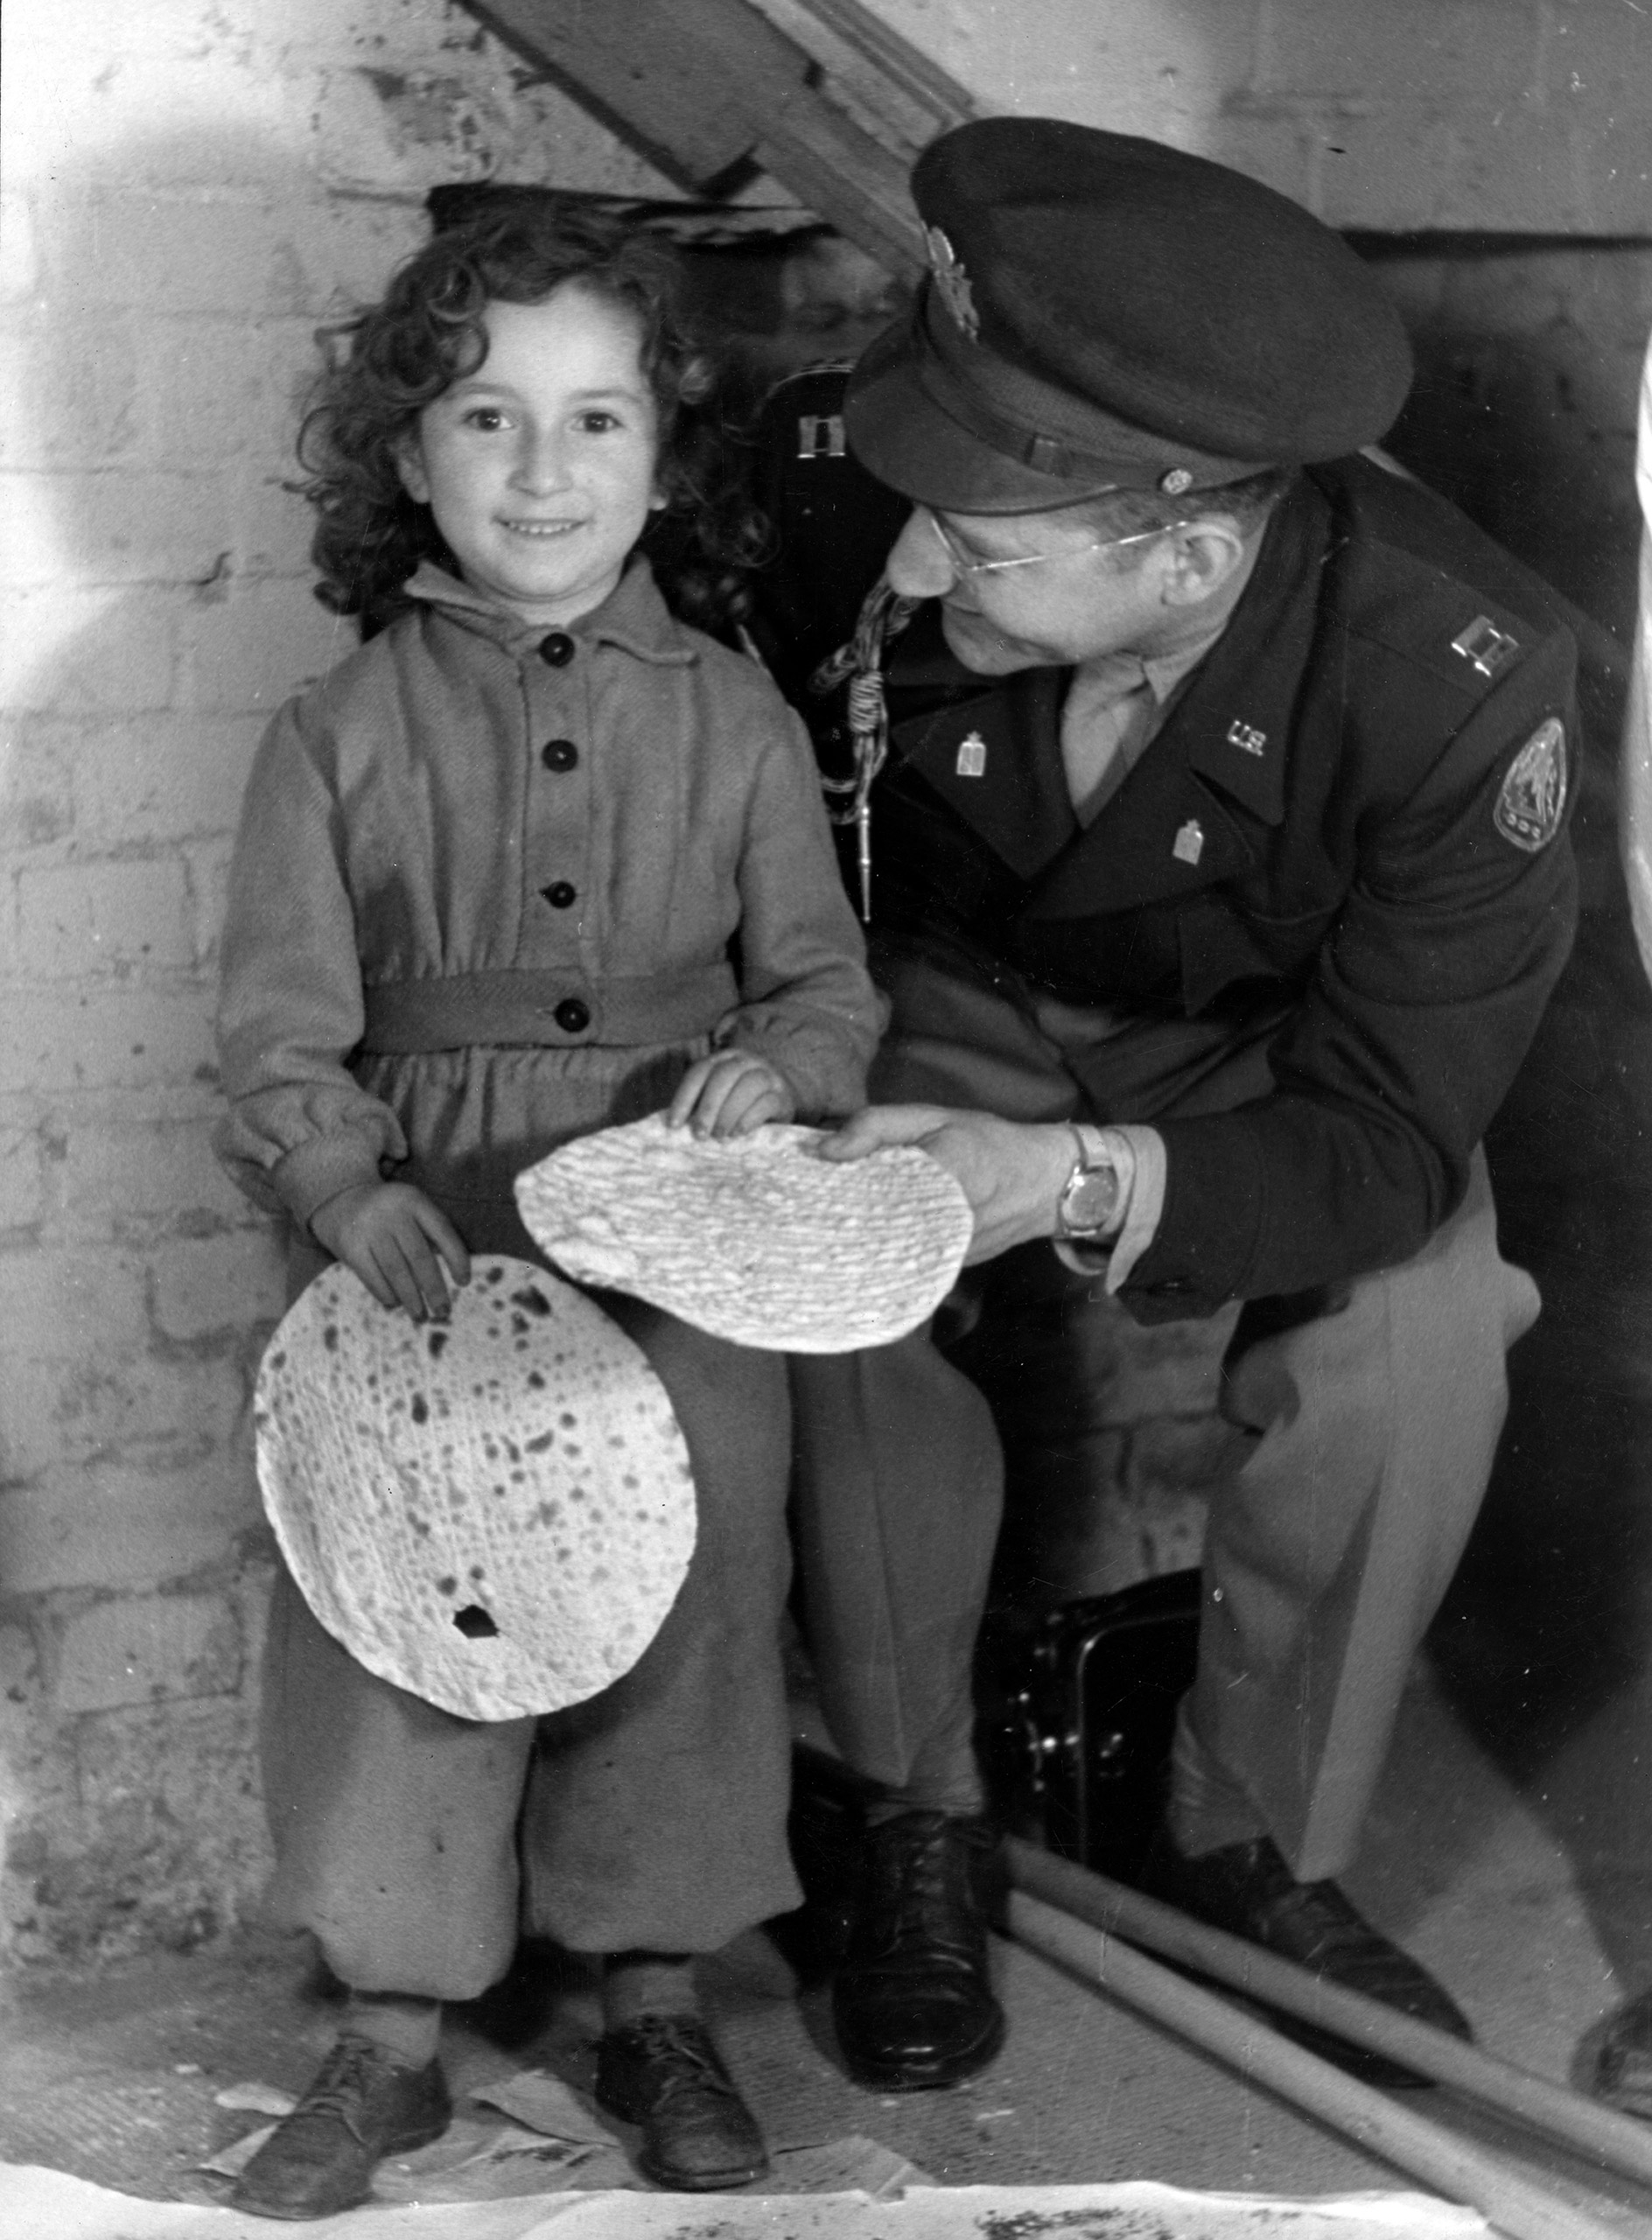 A young girl from the Berlin-Mariendorf DP Camp holding a round shmurah matzo. With her is Captain J. Robbins, Jewish Chaplain for Berlin. Berlin-Mariendorf, Germany, c. 1947. Photographer: Alois Bankhardt.